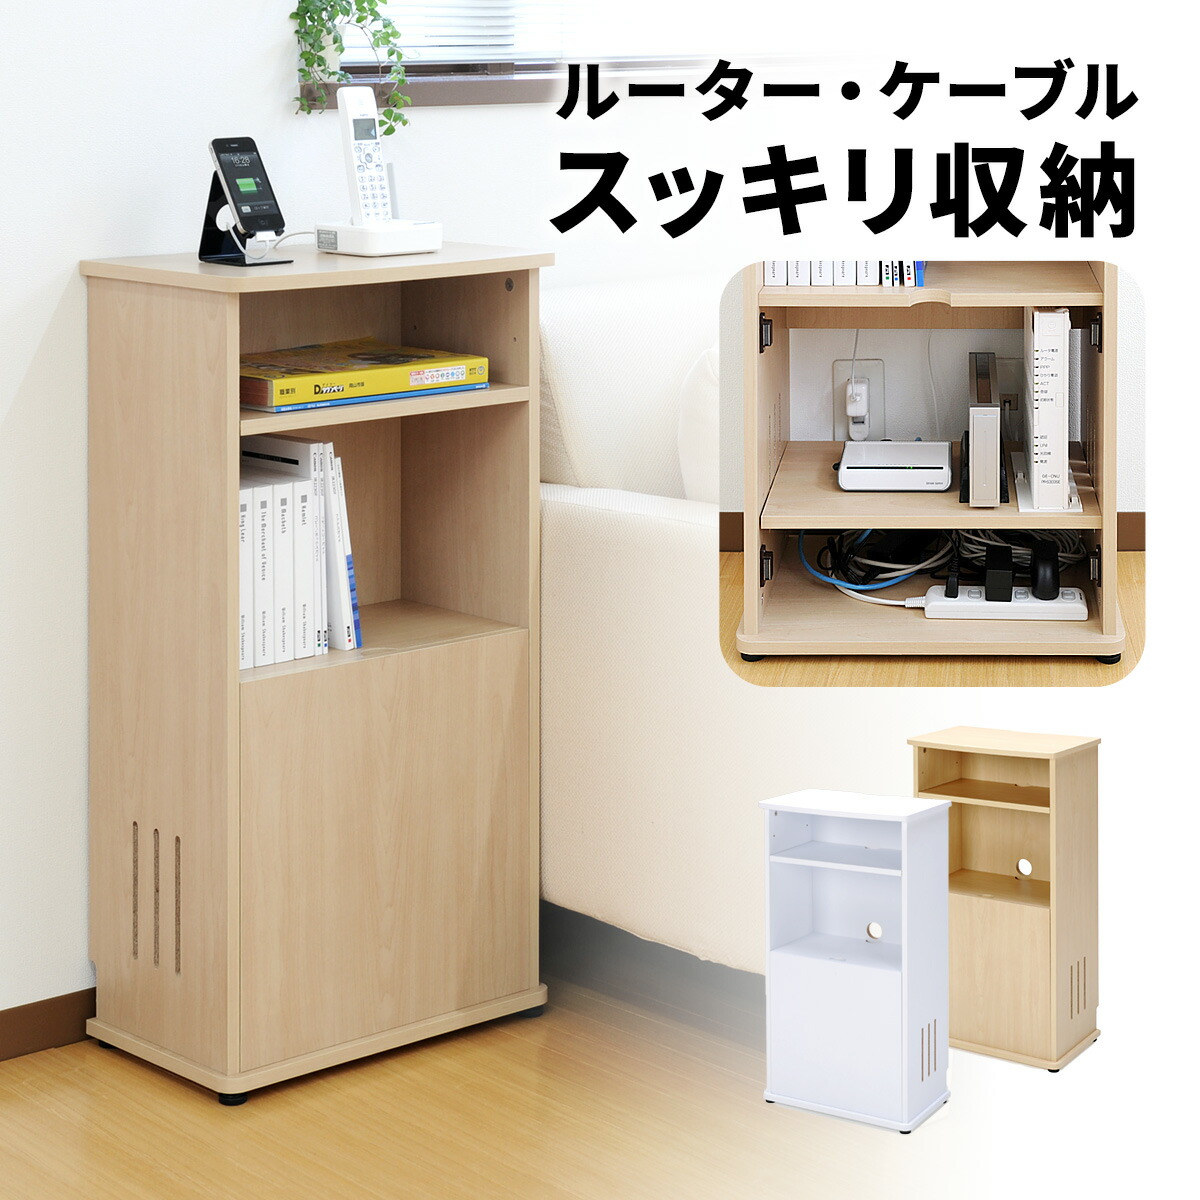 type cable box router storing box wiring cover fashion [100-desk066]  clearly high